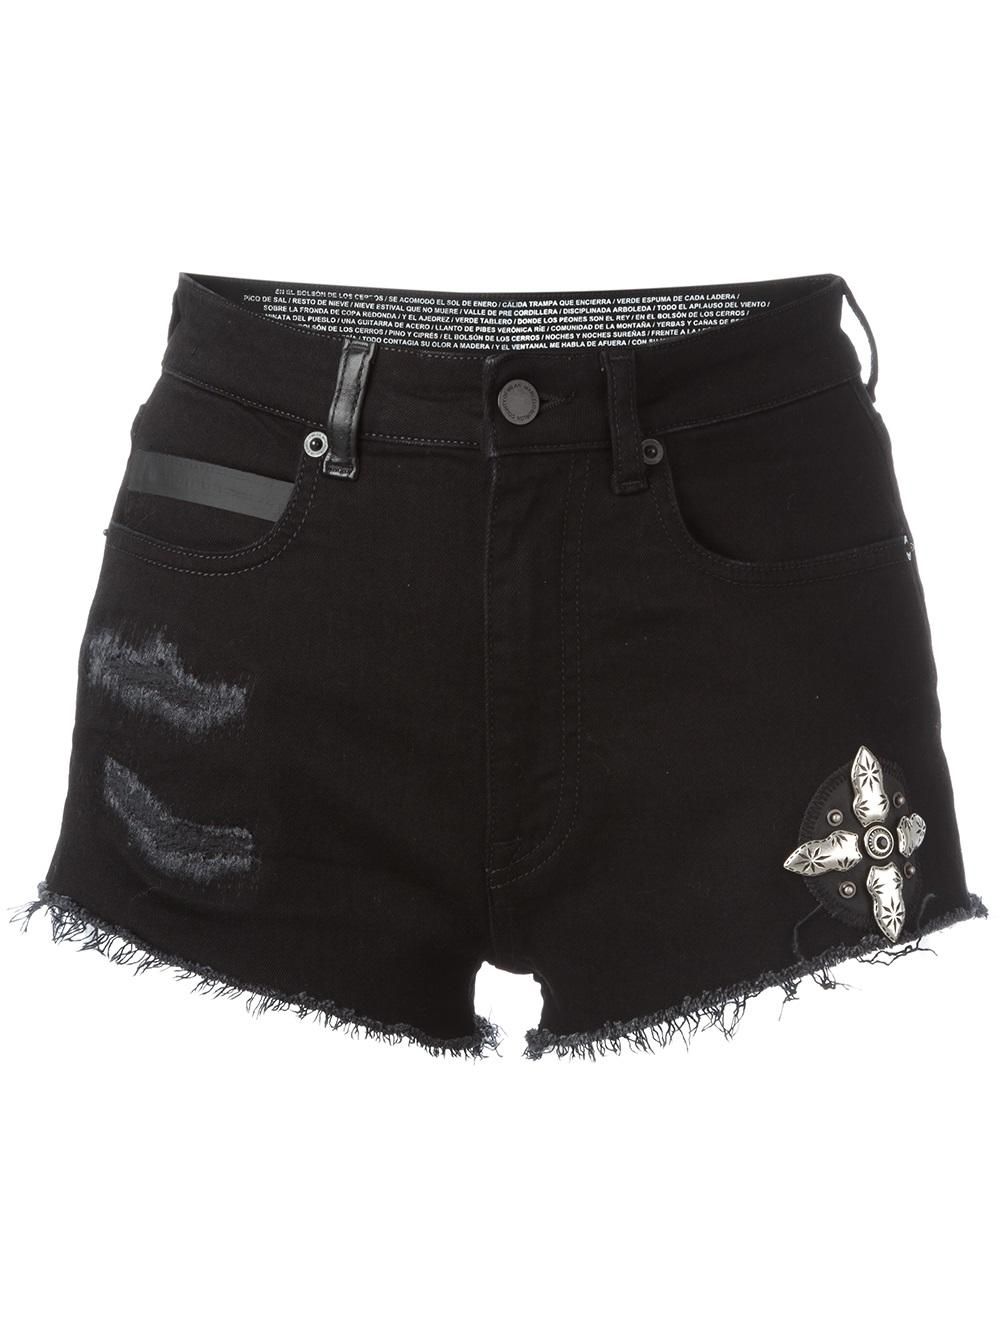 MARCELO BURLON WOMAN CANDY SHORT JEANS